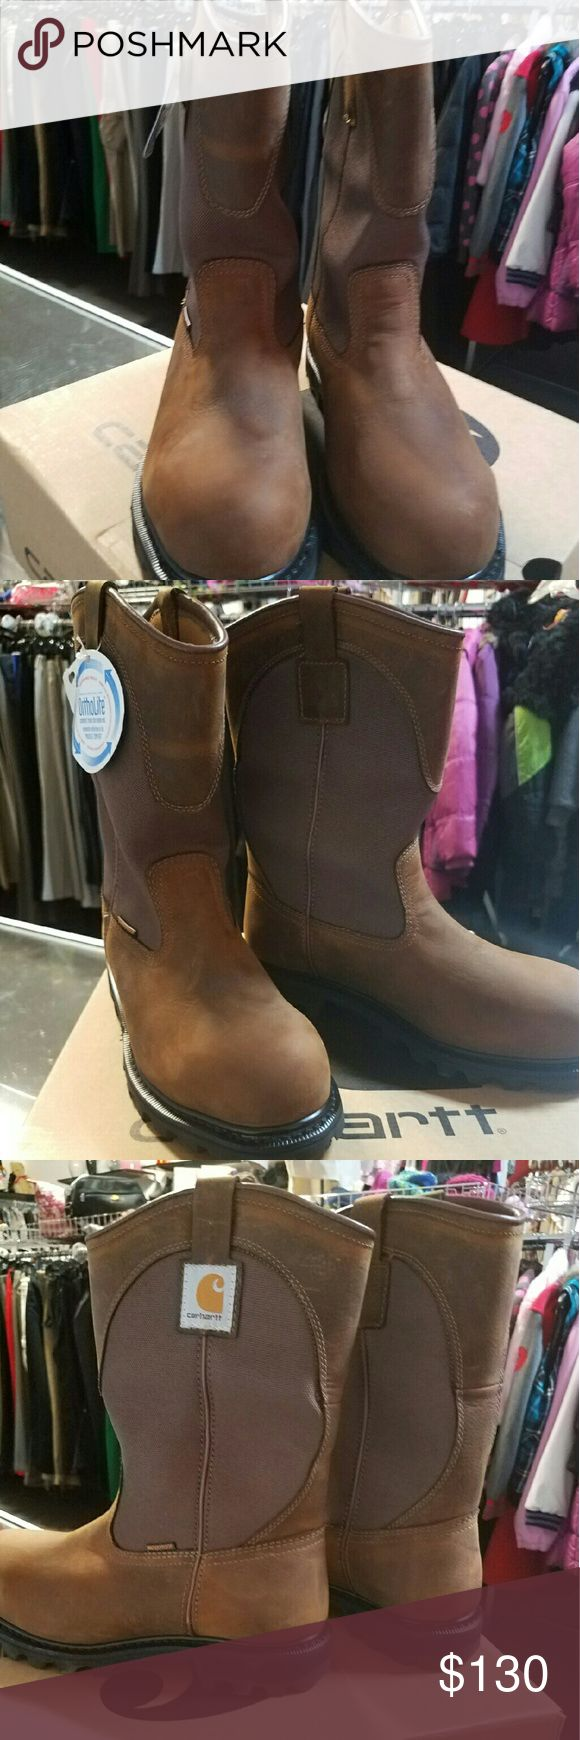 Carhartt men Brown safety toe boots sz 10M Genuine full grain waterproof leather, waterproof membrane, goodyear welt construction, carhartt rubber outsile with oil chemical and slip resistant properties, ortholite insole carhartt  Shoes Boots